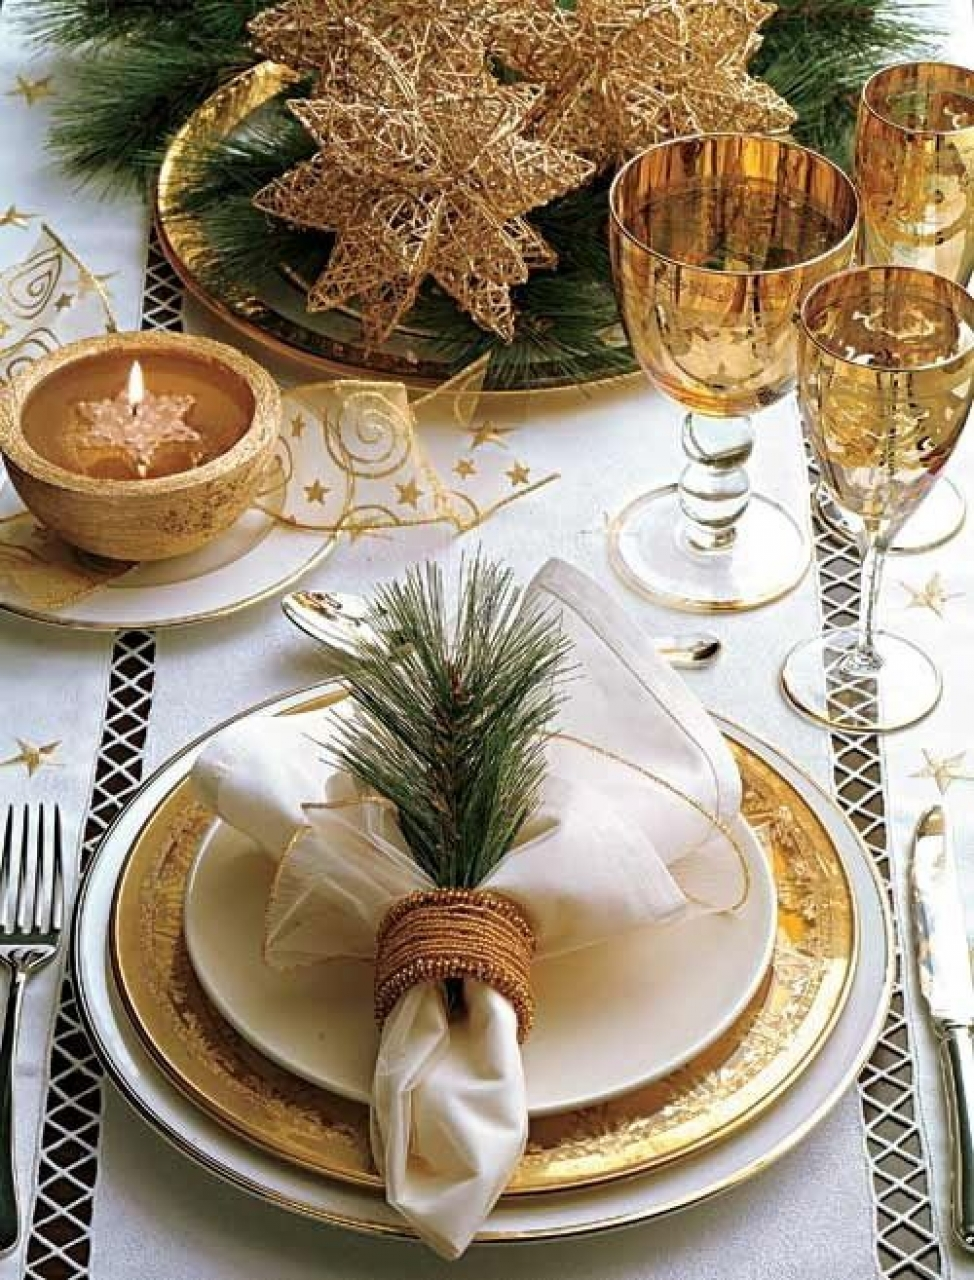 10 Gorgeous Table Settings for Christmas that you Will Love table settings for christmas 8 Gorgeous Table Settings for Christmas that you Will Love 10 Gorgeous Table Settings for Christmas that you Will Love4